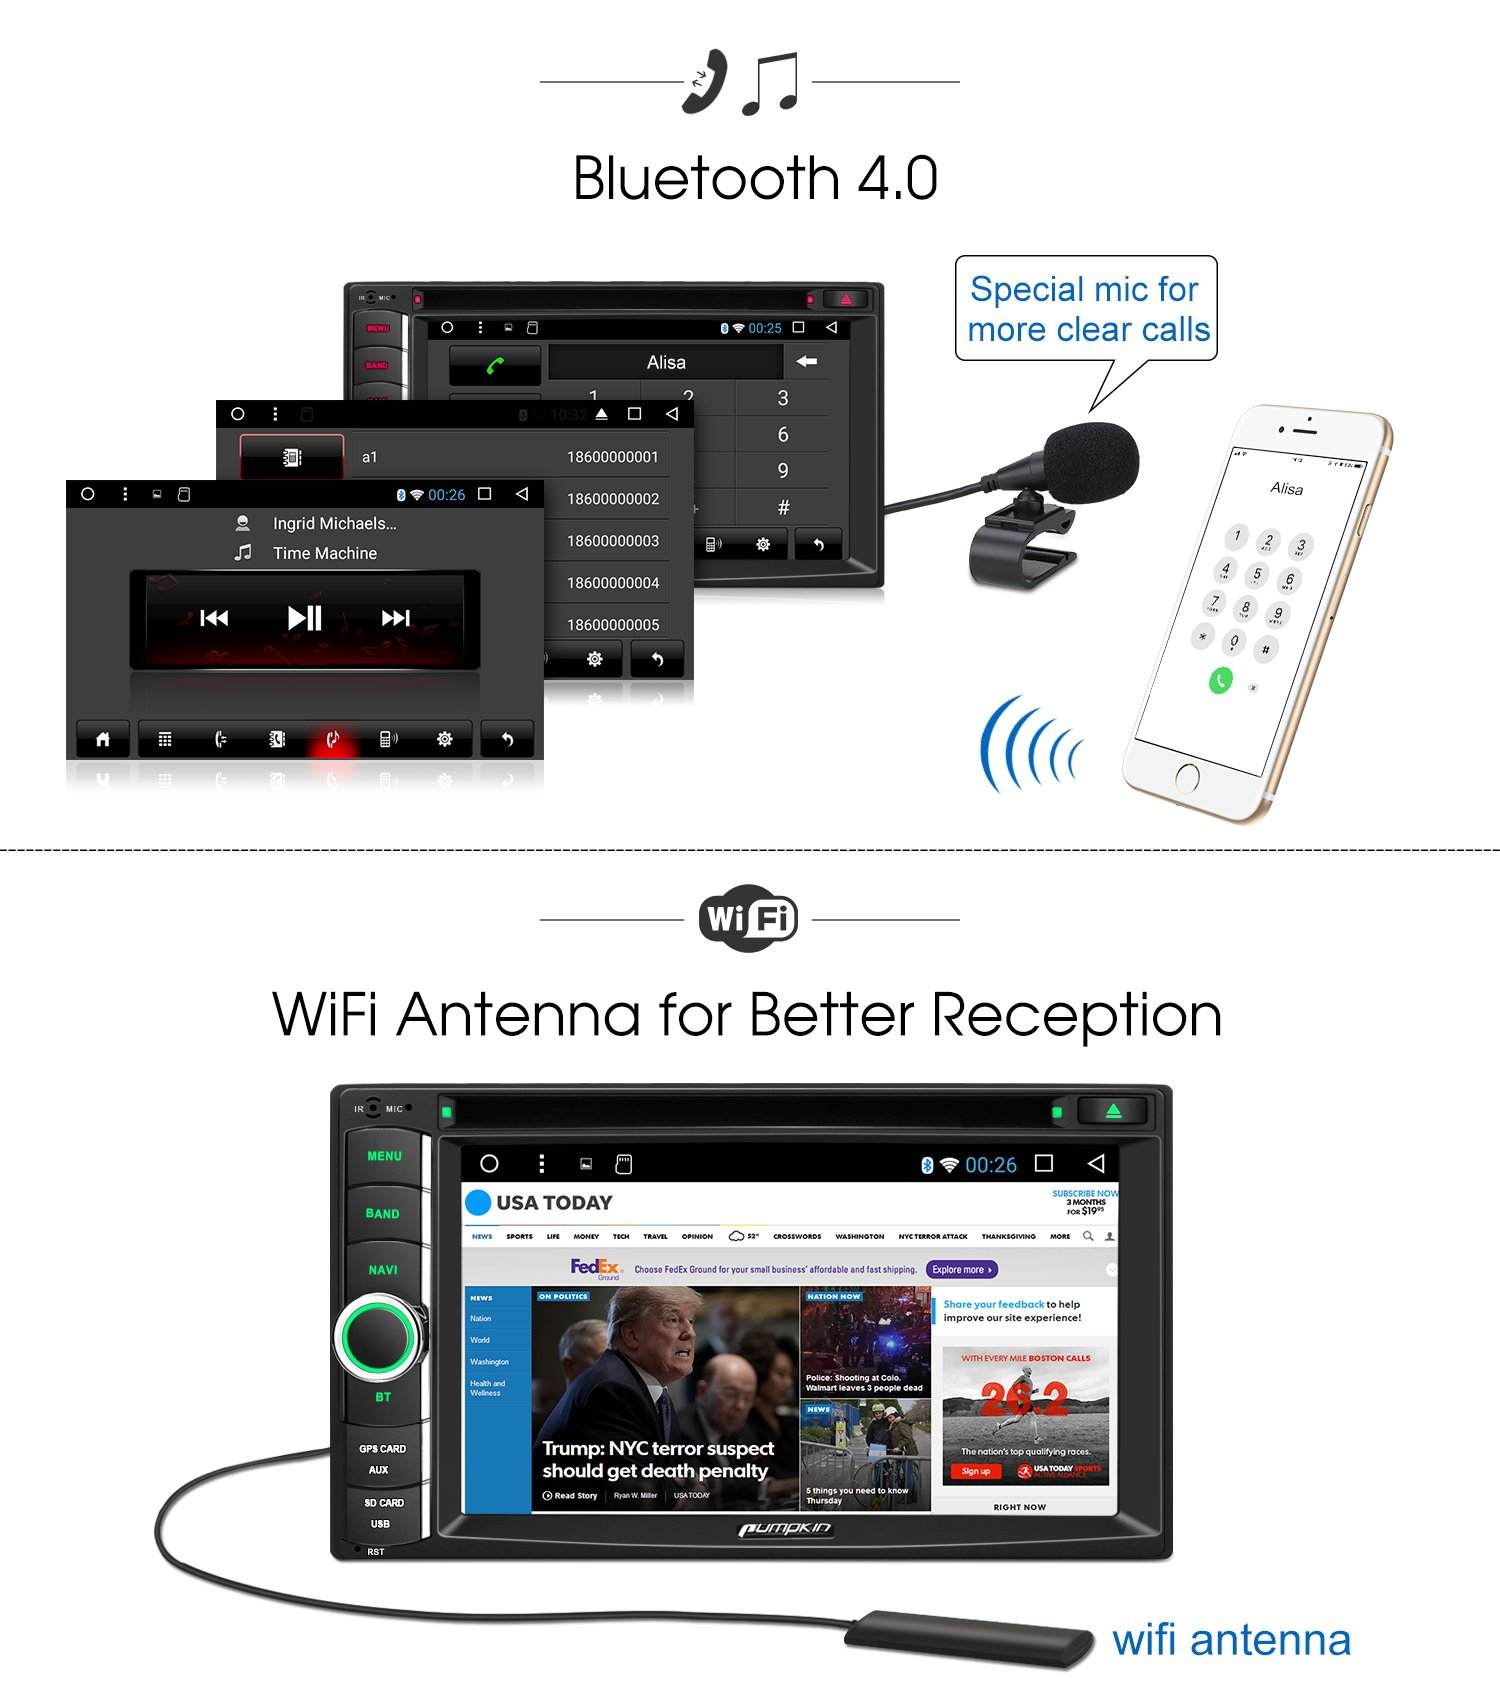 Android 7.1 Head Unit Double Din, Octa Core 32GB+ 2GB Car Stereo DVD CD Player with Navigation, Support Android Auto, Bluetooth, WIFI, MirrorLink, Backup Camera, AUX, Dash Cam, 6.2 Inch Touch Screen by PUMPKIN (Image #4)